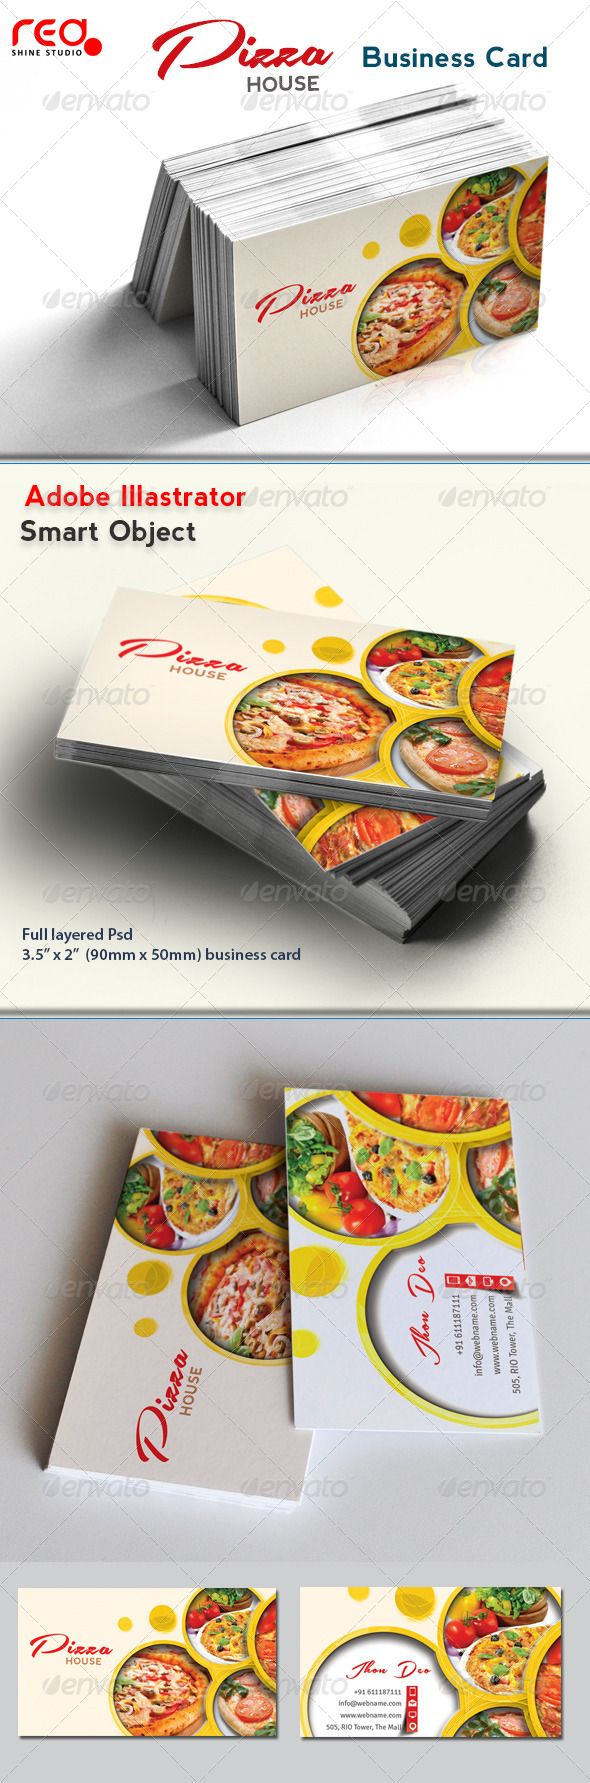 Restaurant business card business cards card templates and business restaurant business card template psd download here httpgraphicriveritemrestaurant business card 4432059srank134refyinkira reheart Image collections